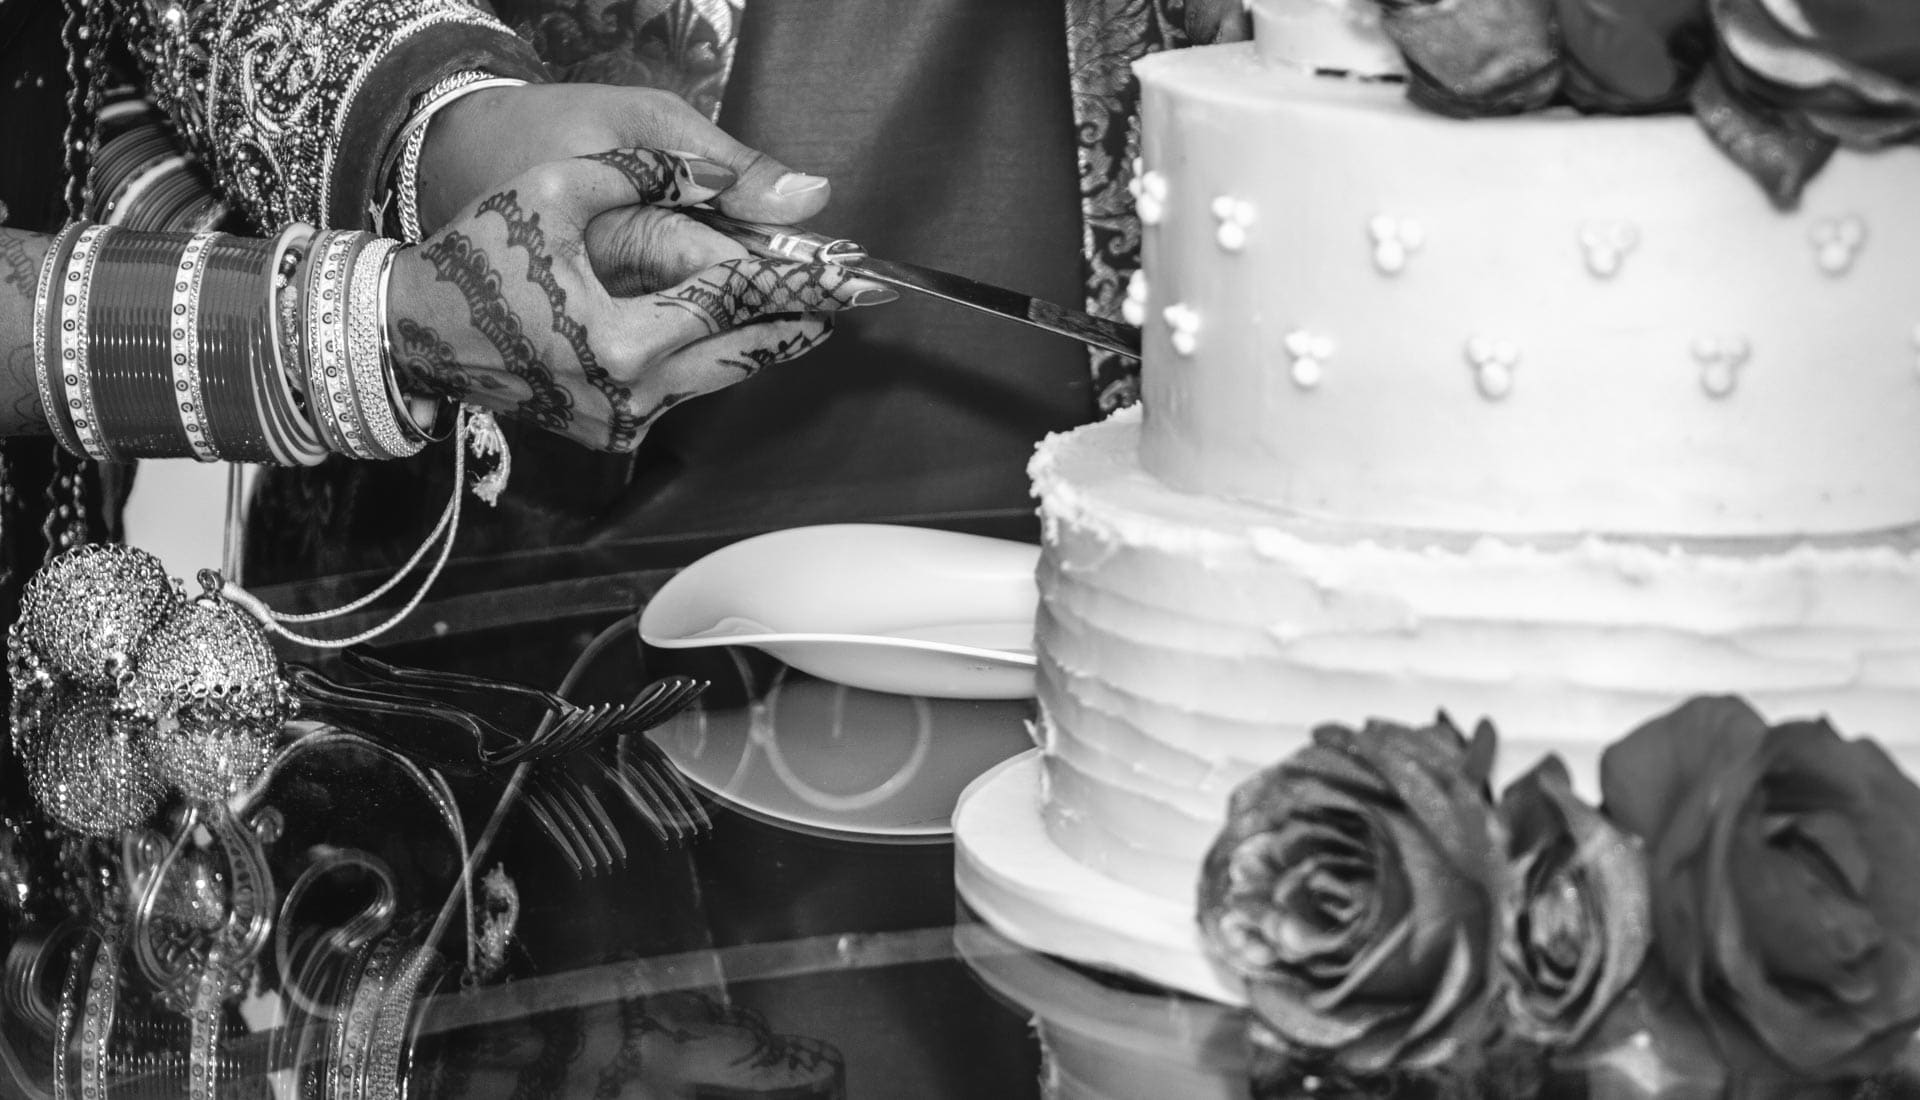 Cutting cake detail photo, Asian bride and groom hands are holding a knife cutting their wedding cake, documentary wedding photographer Birmingham uk